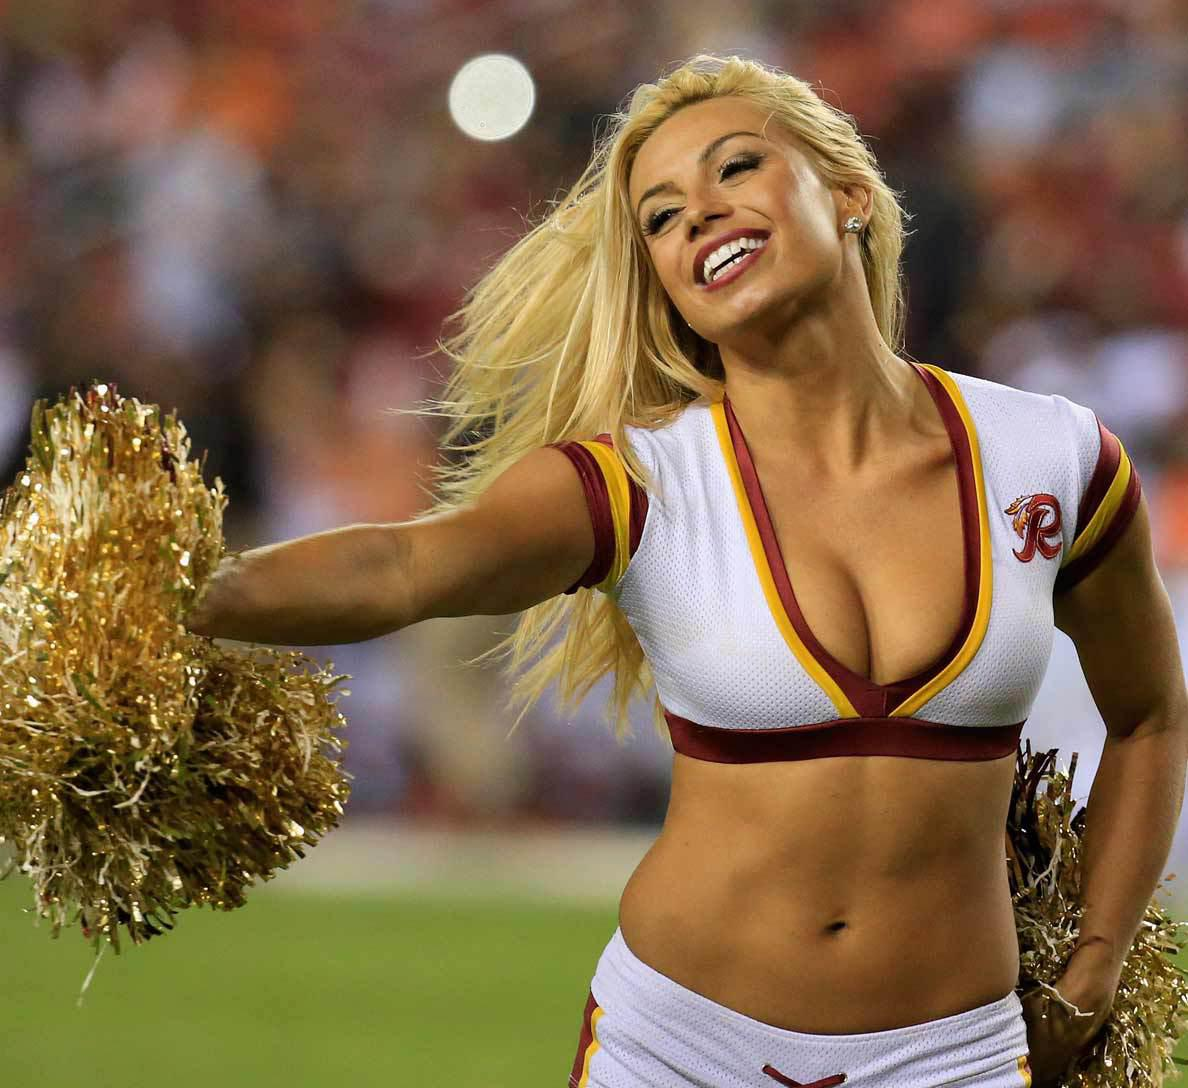 Hot busty nfl cheerleaders, young girls extreme blow jobs gallery